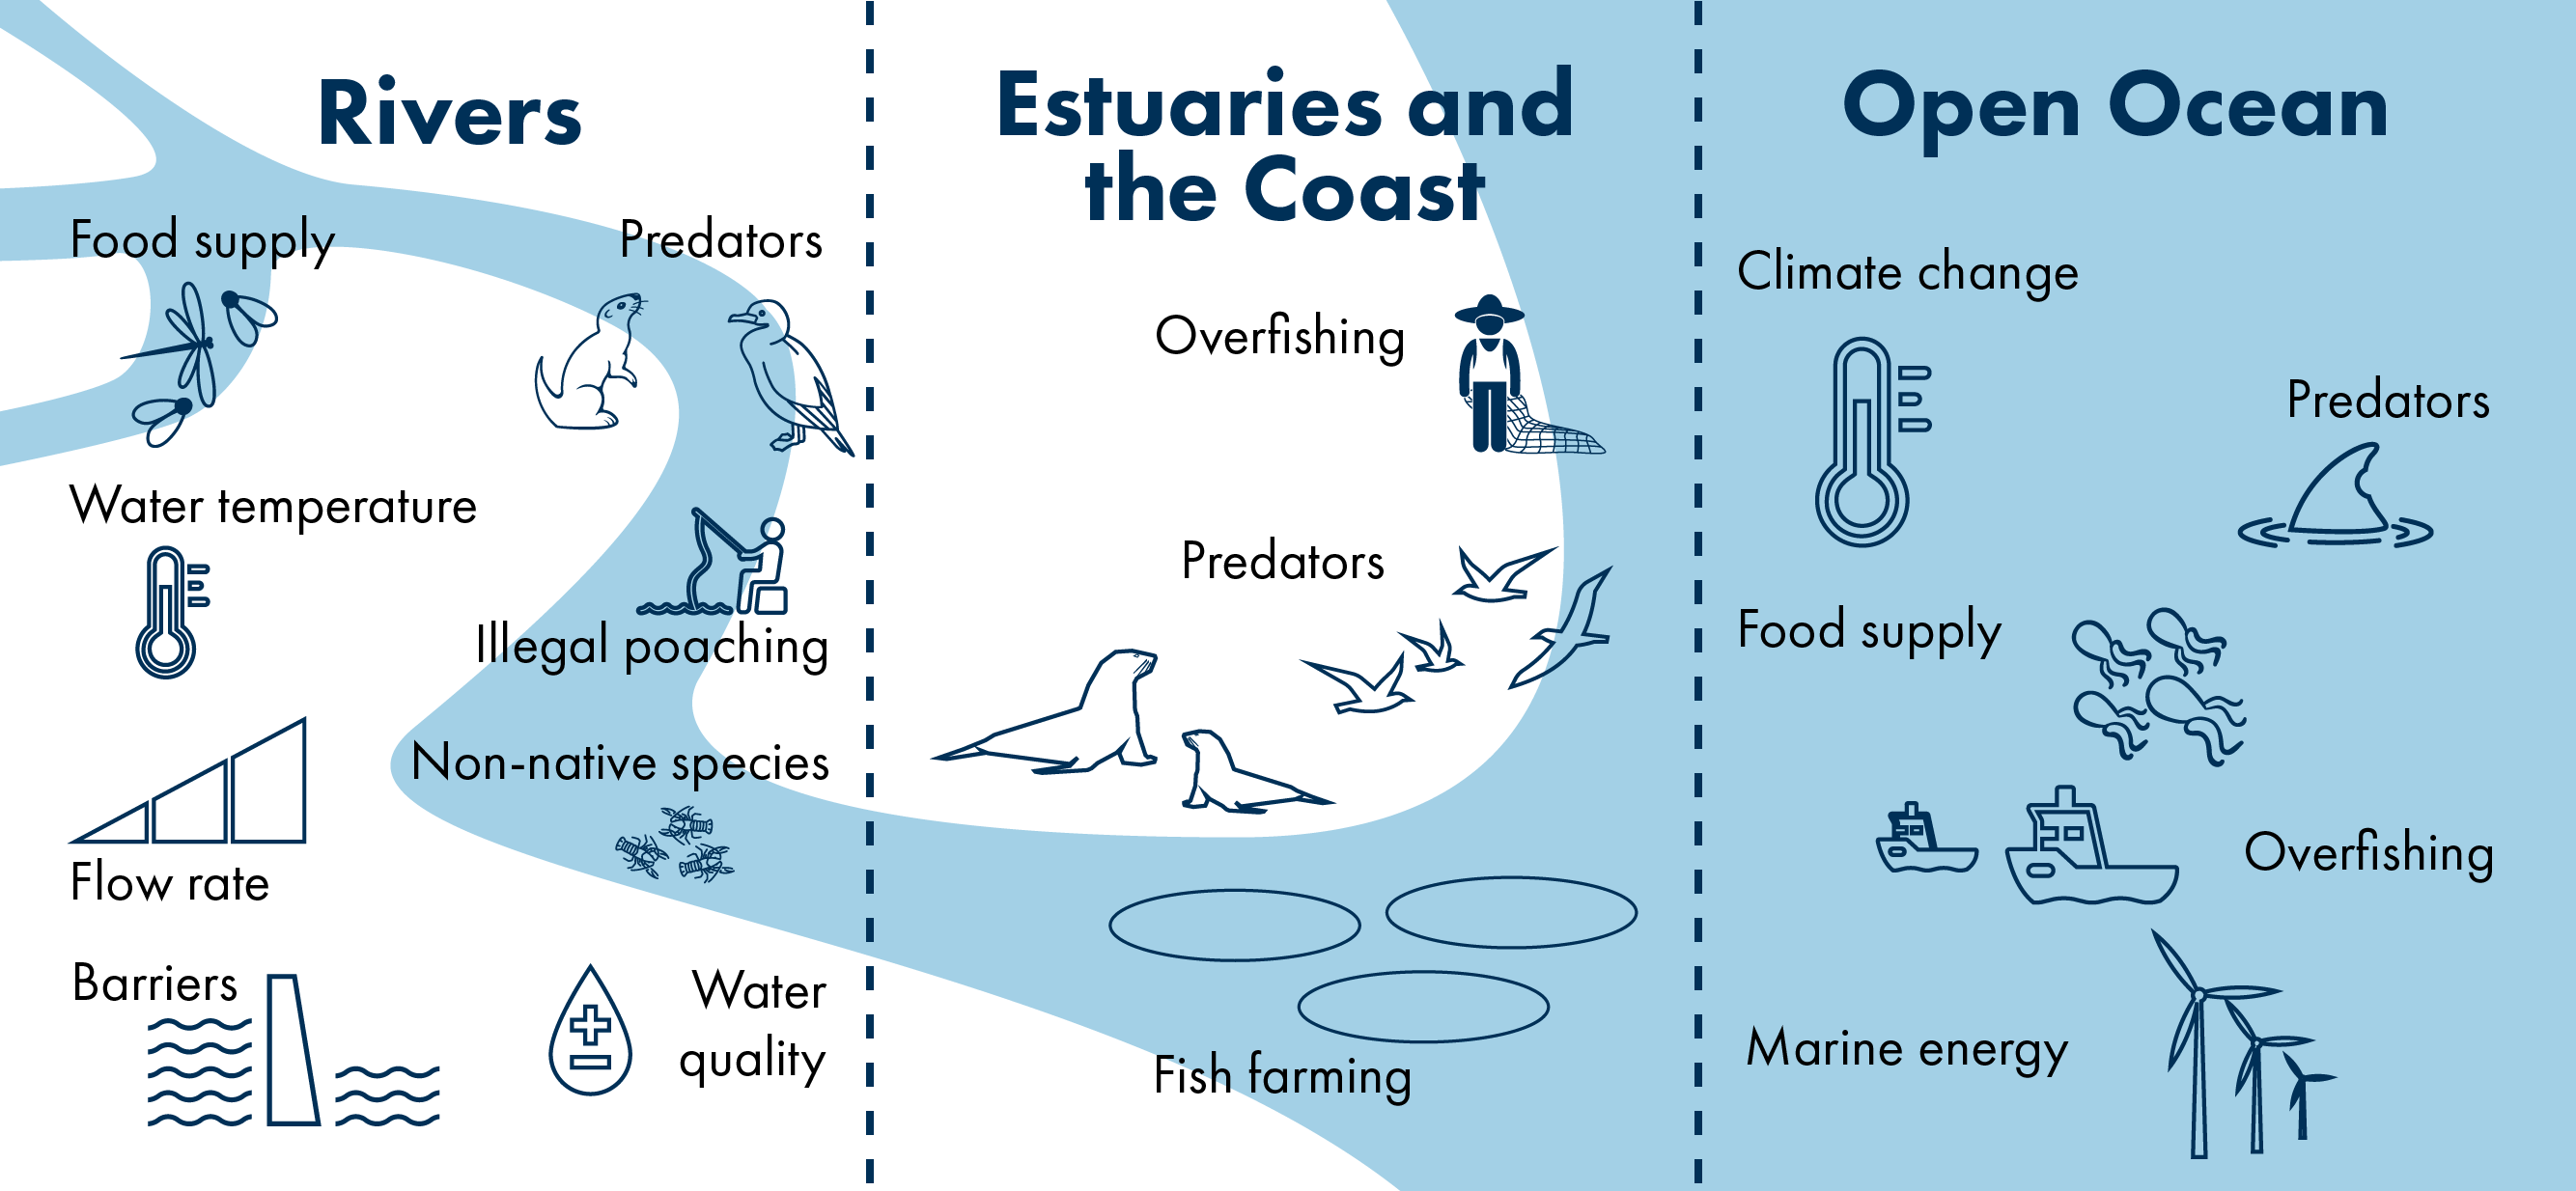 A graphic depicting threats to salmon in rivers, estuaries and the coast plus the open ocean